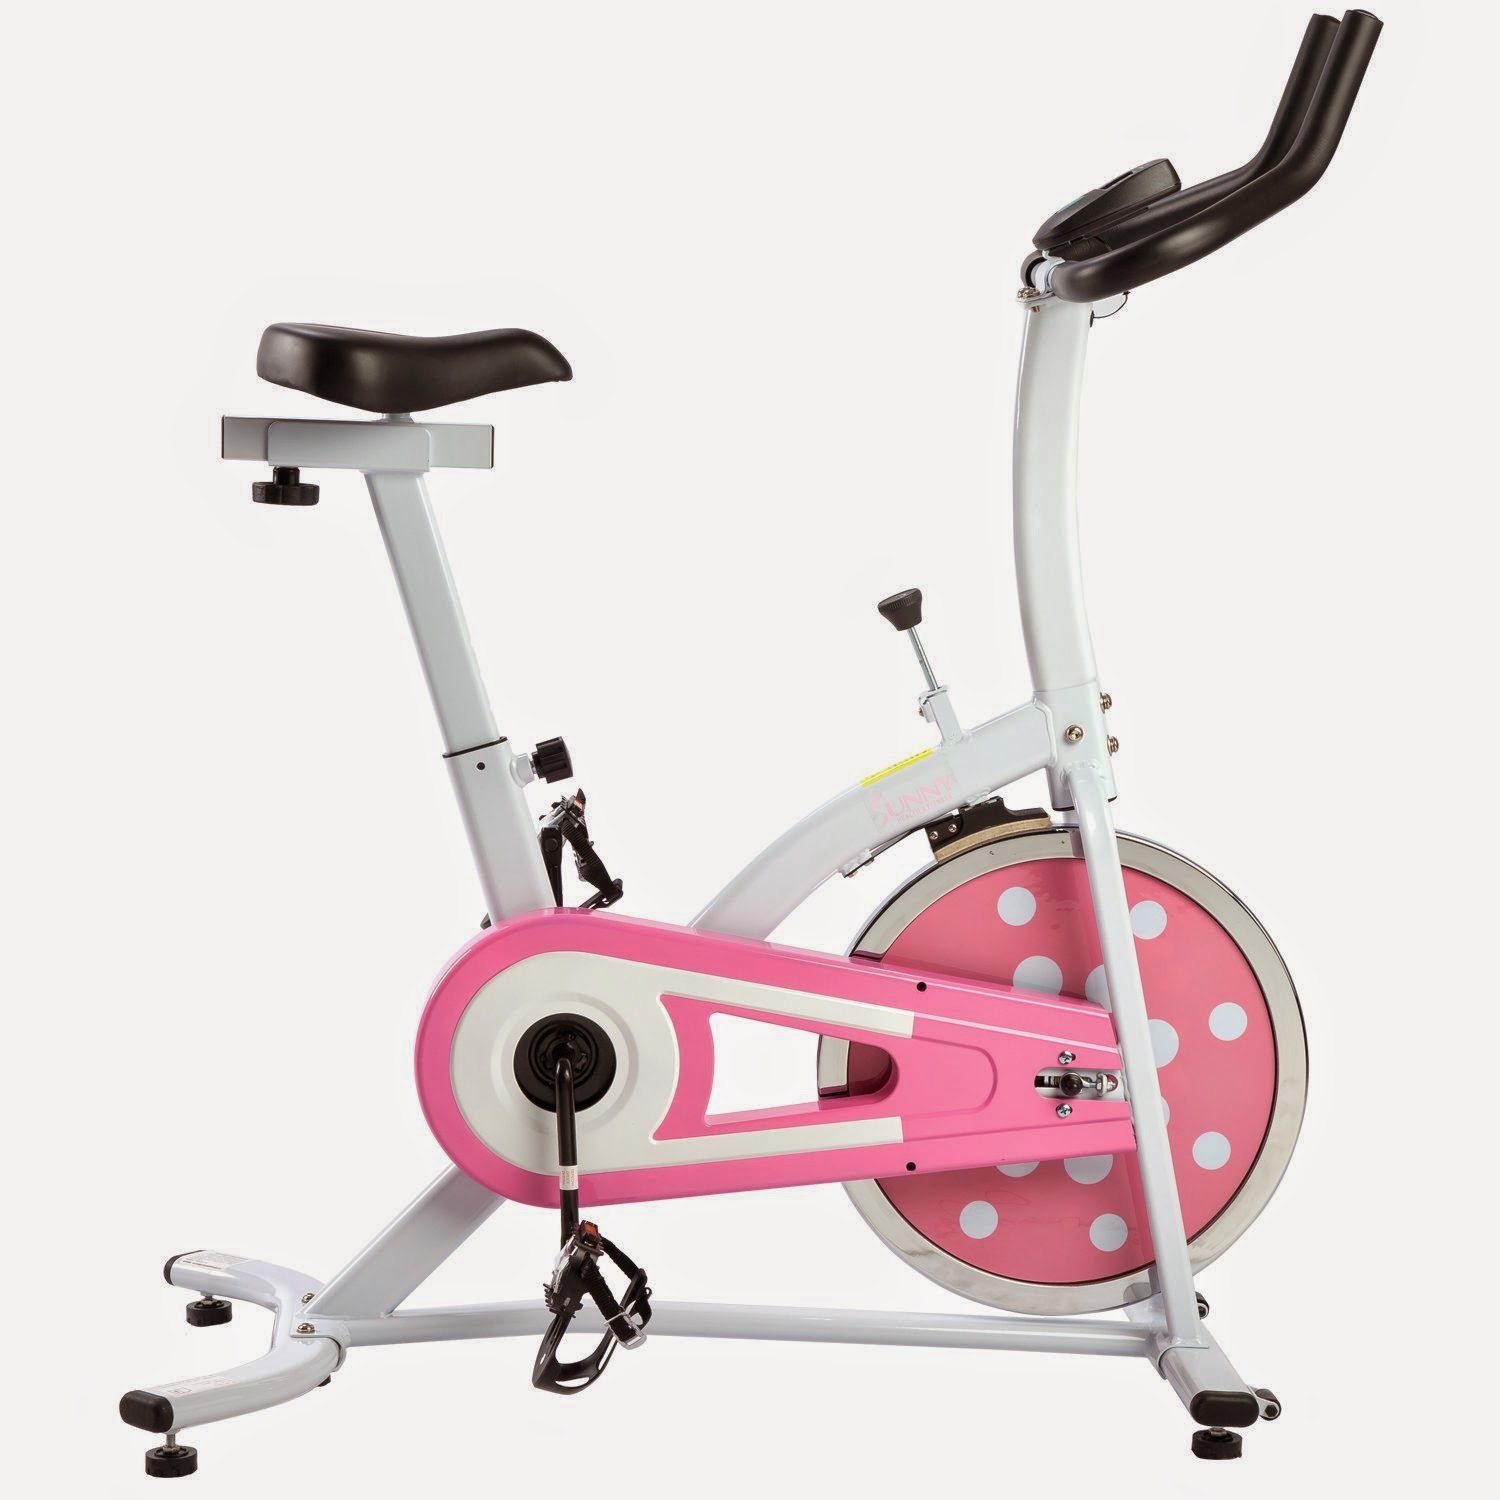 Sunny Health & Fitness Pink Indoor Cycling Bike / Spin Bike, review features